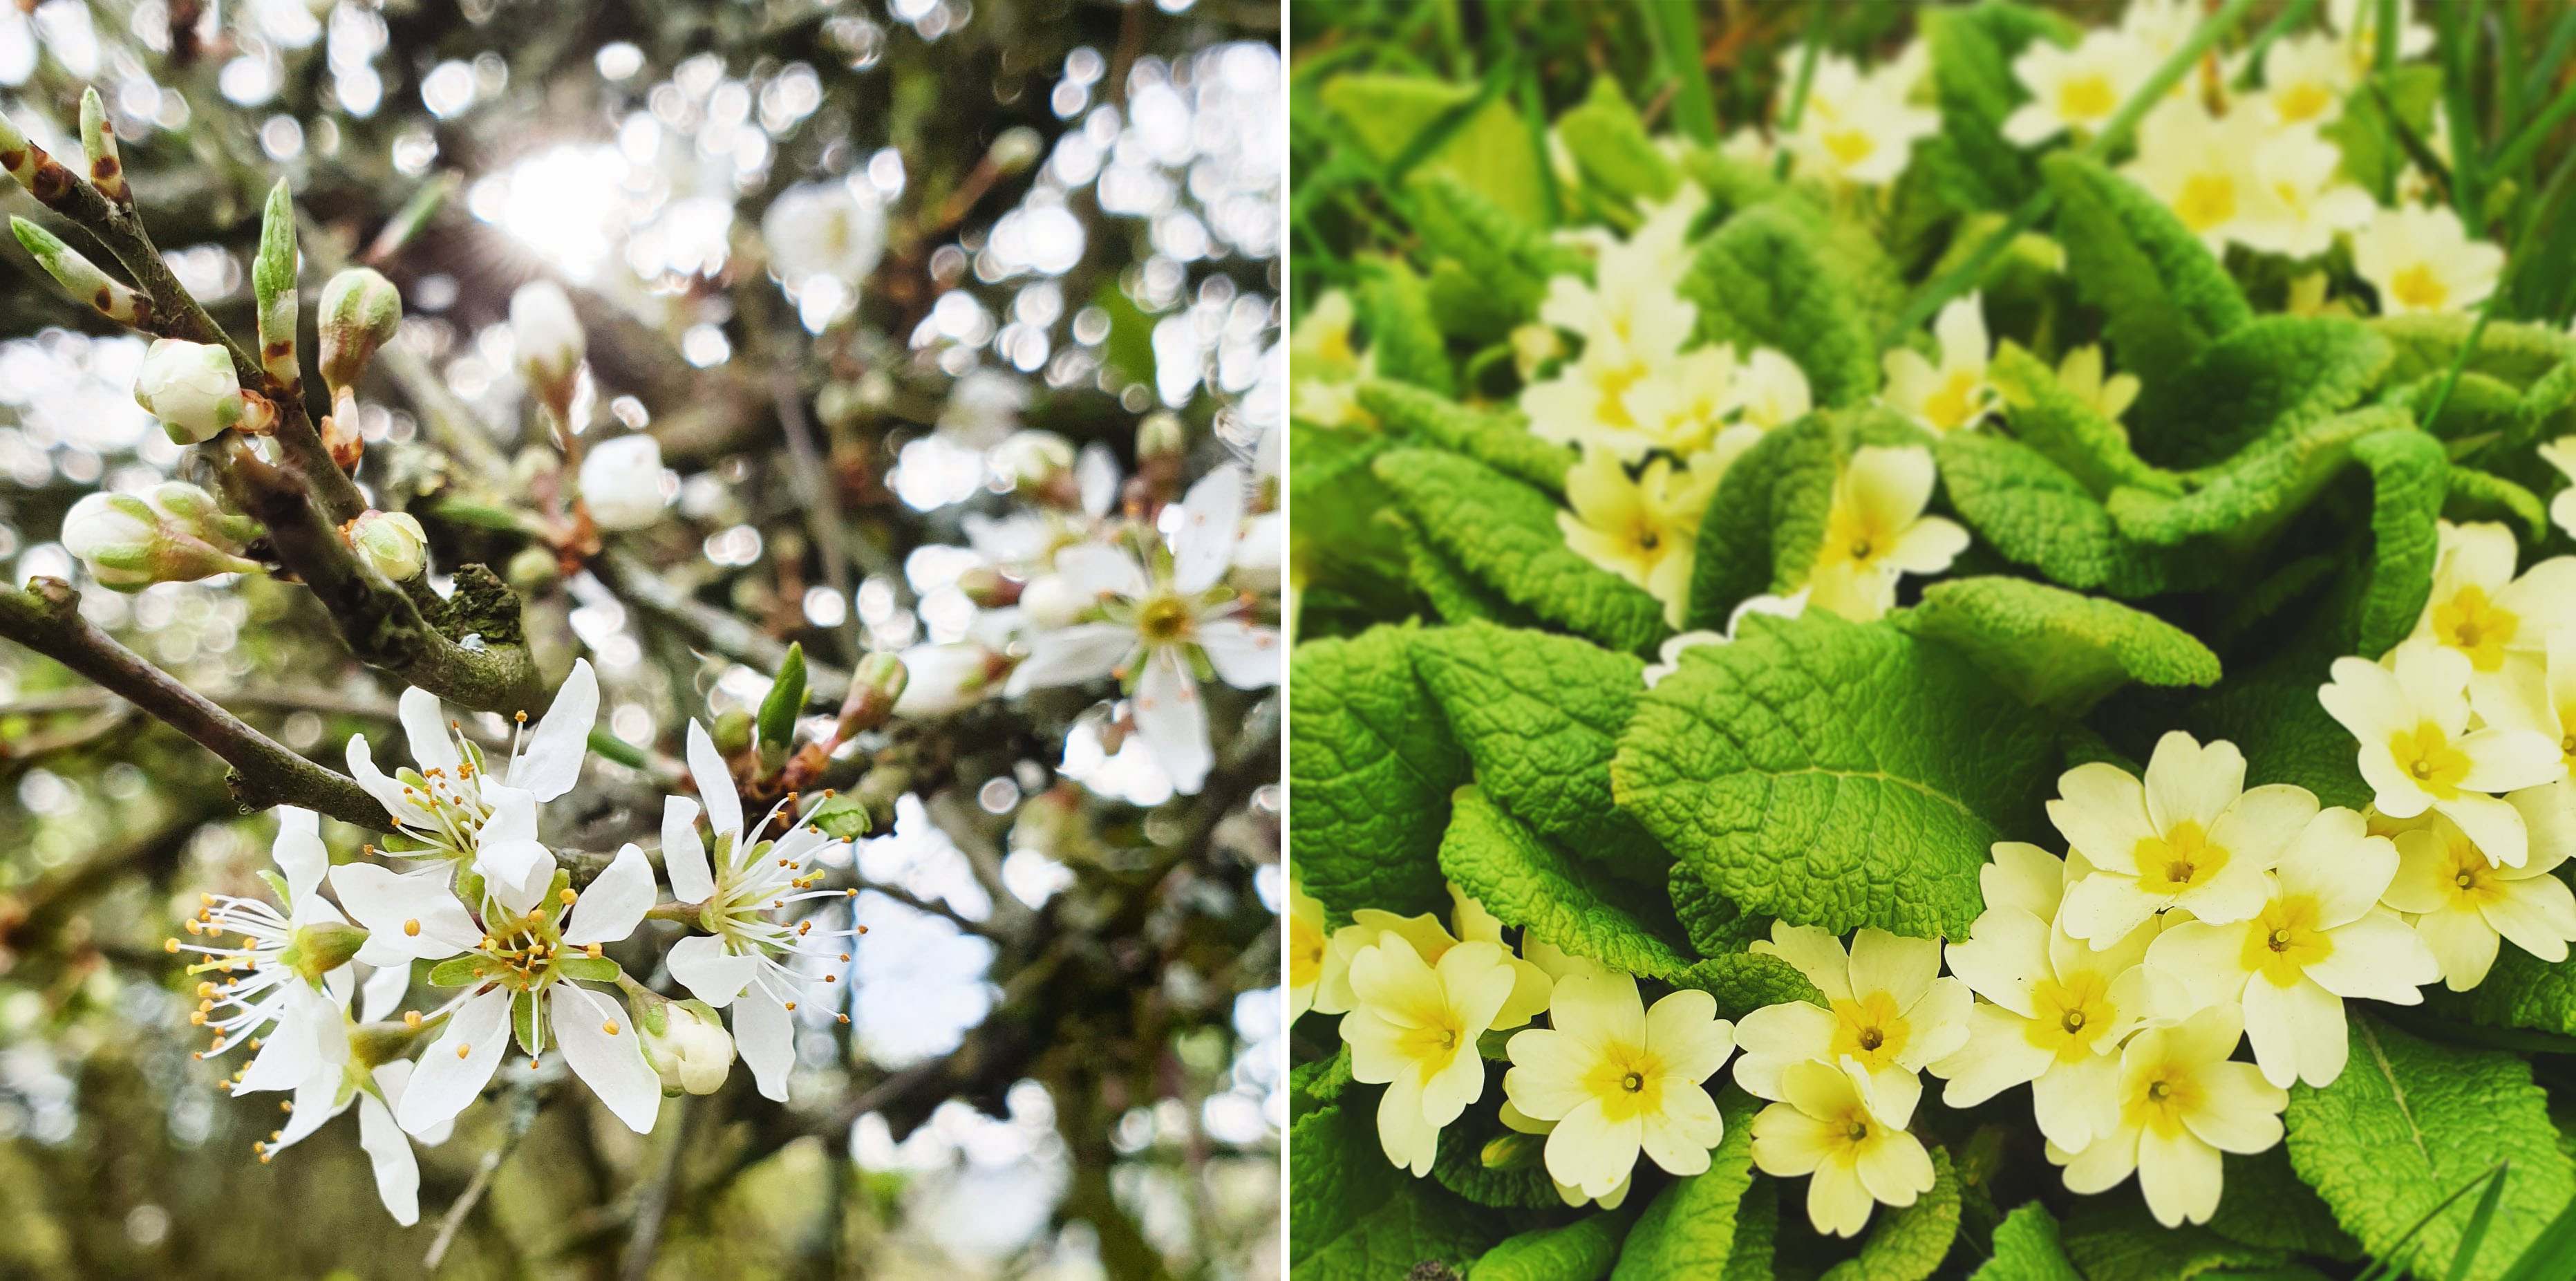 Blackthorn blossom and Primroses - The Last Krystallos